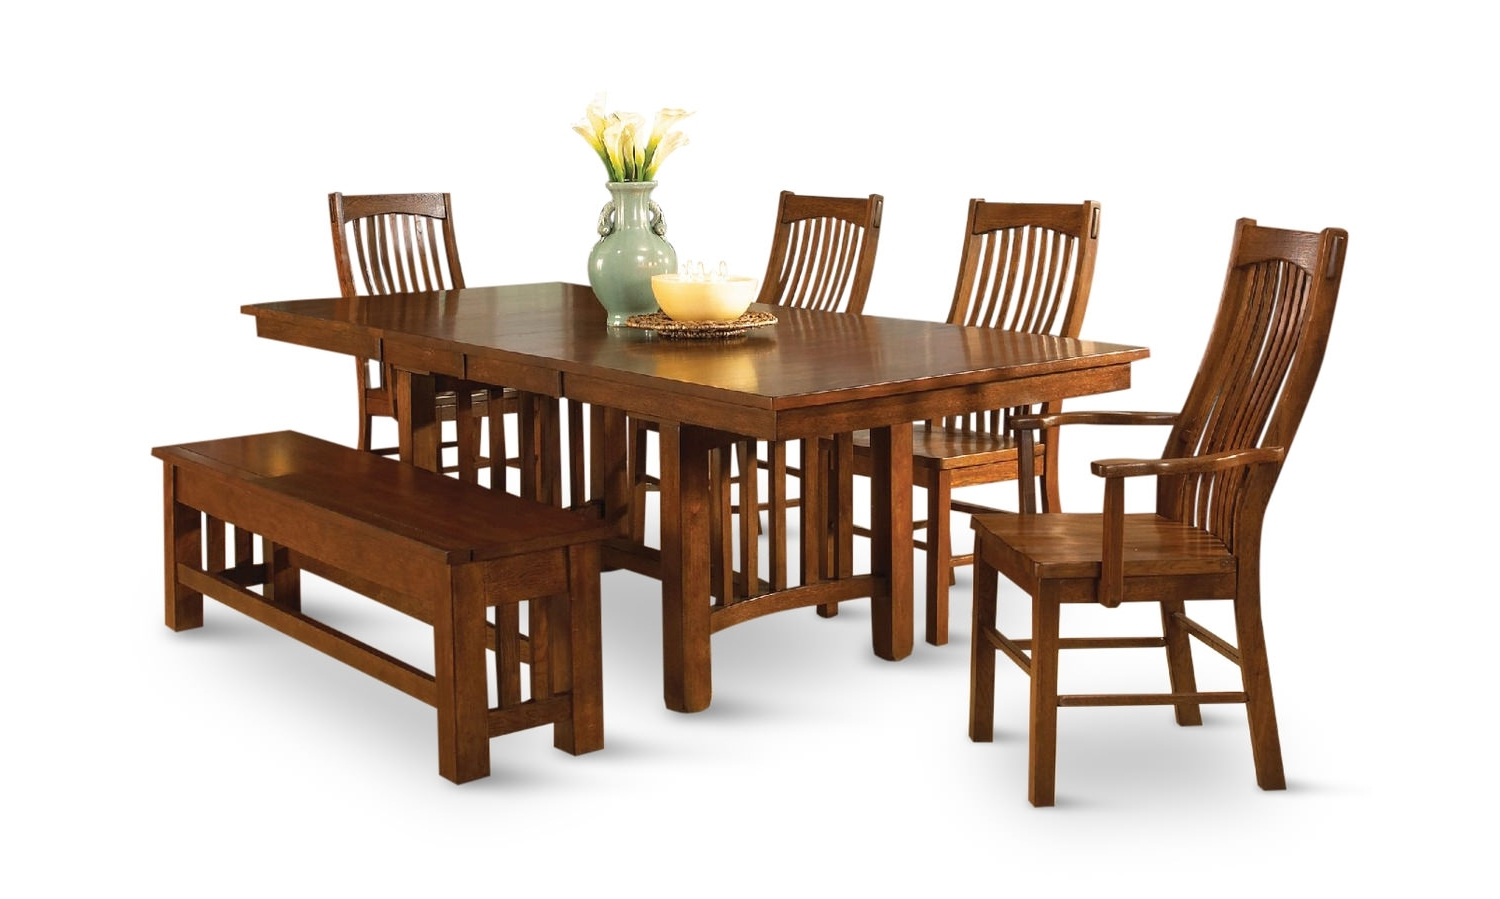 Laurelhurst Solid Oak Mission Dining Table And 4 Side Chairs Intended For Recent Oak Dining Furniture (View 10 of 25)